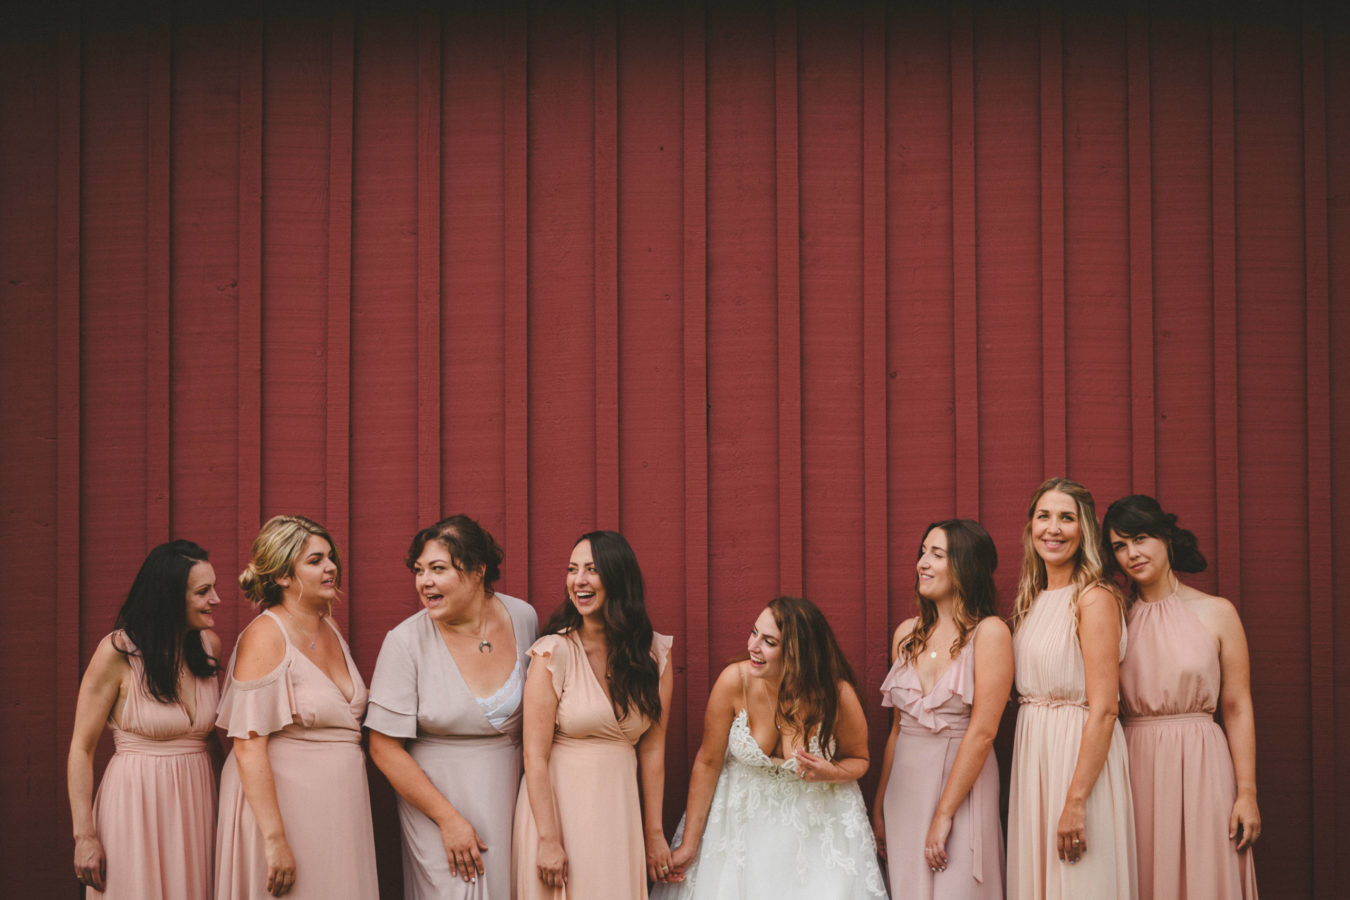 bride and bridesmaids laughing while leaning up against the red wall of a large barn